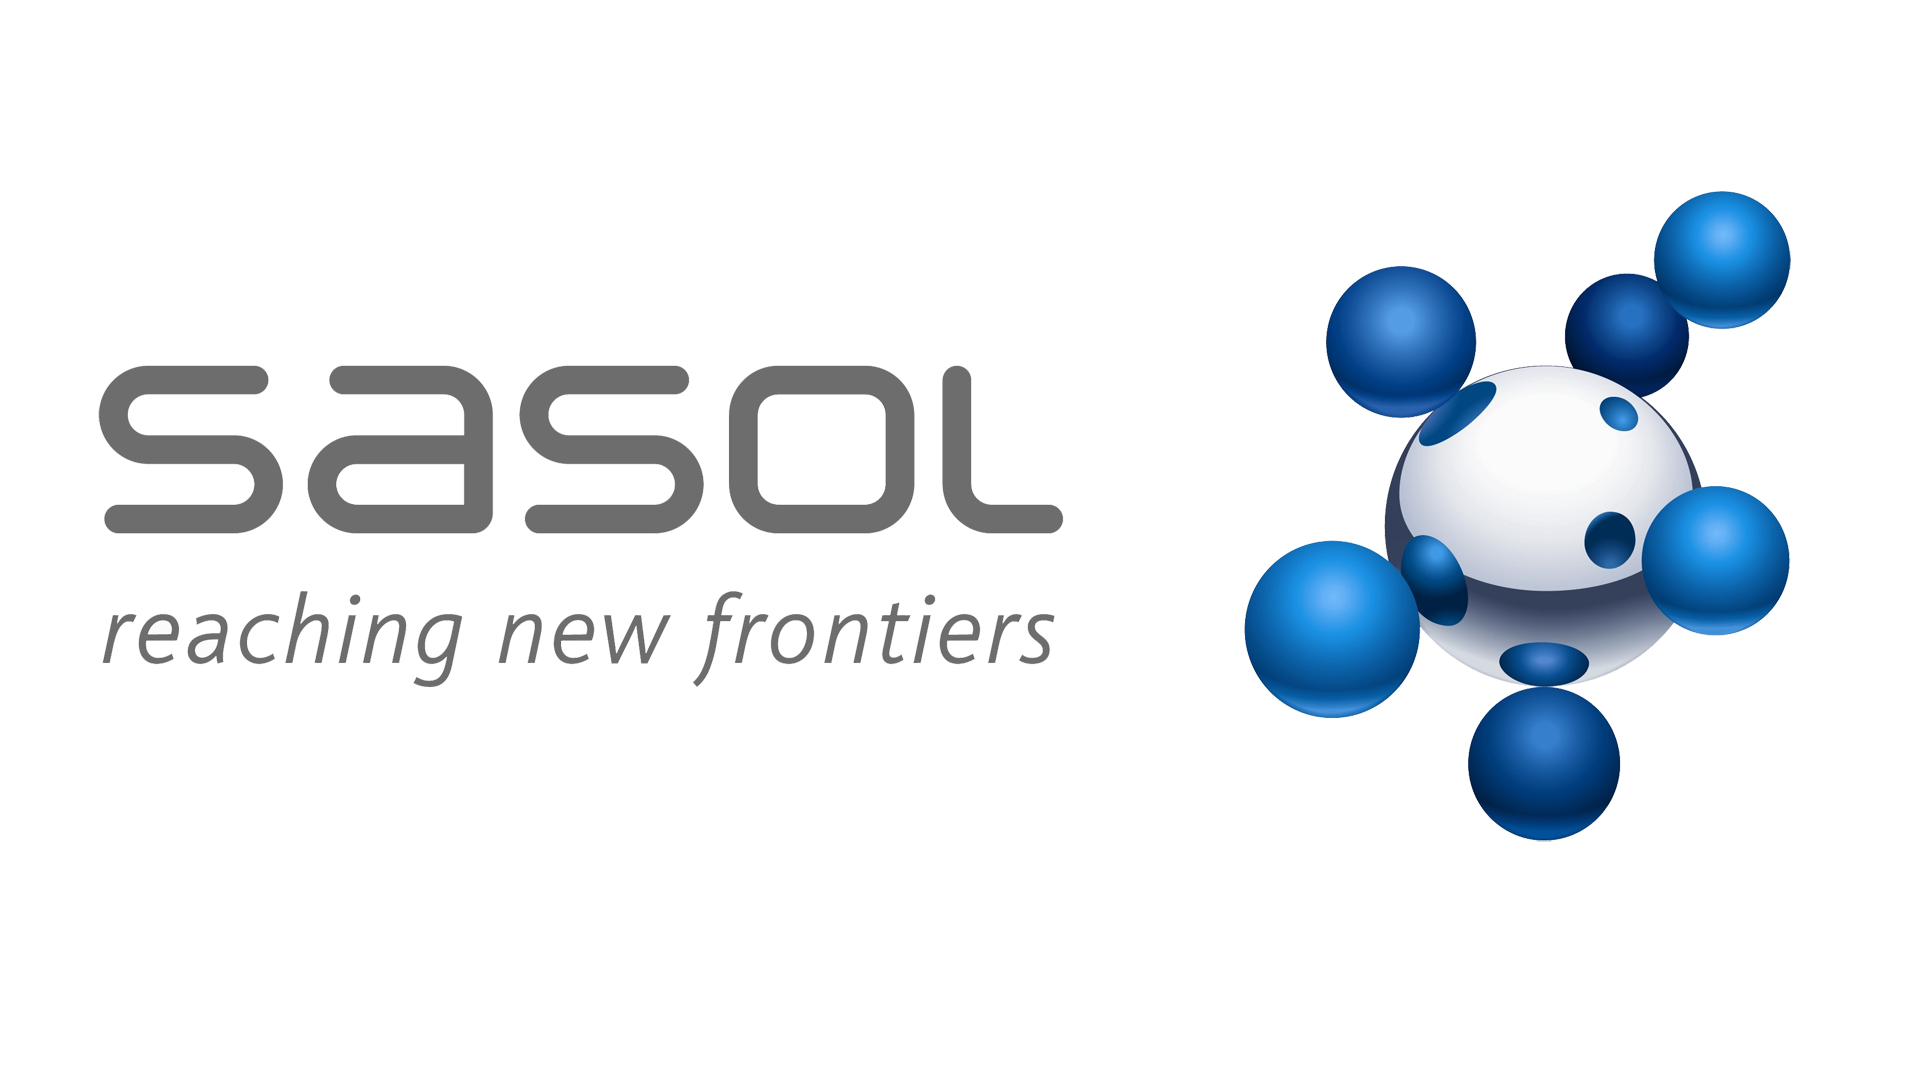 Sasol-Logo-with-text